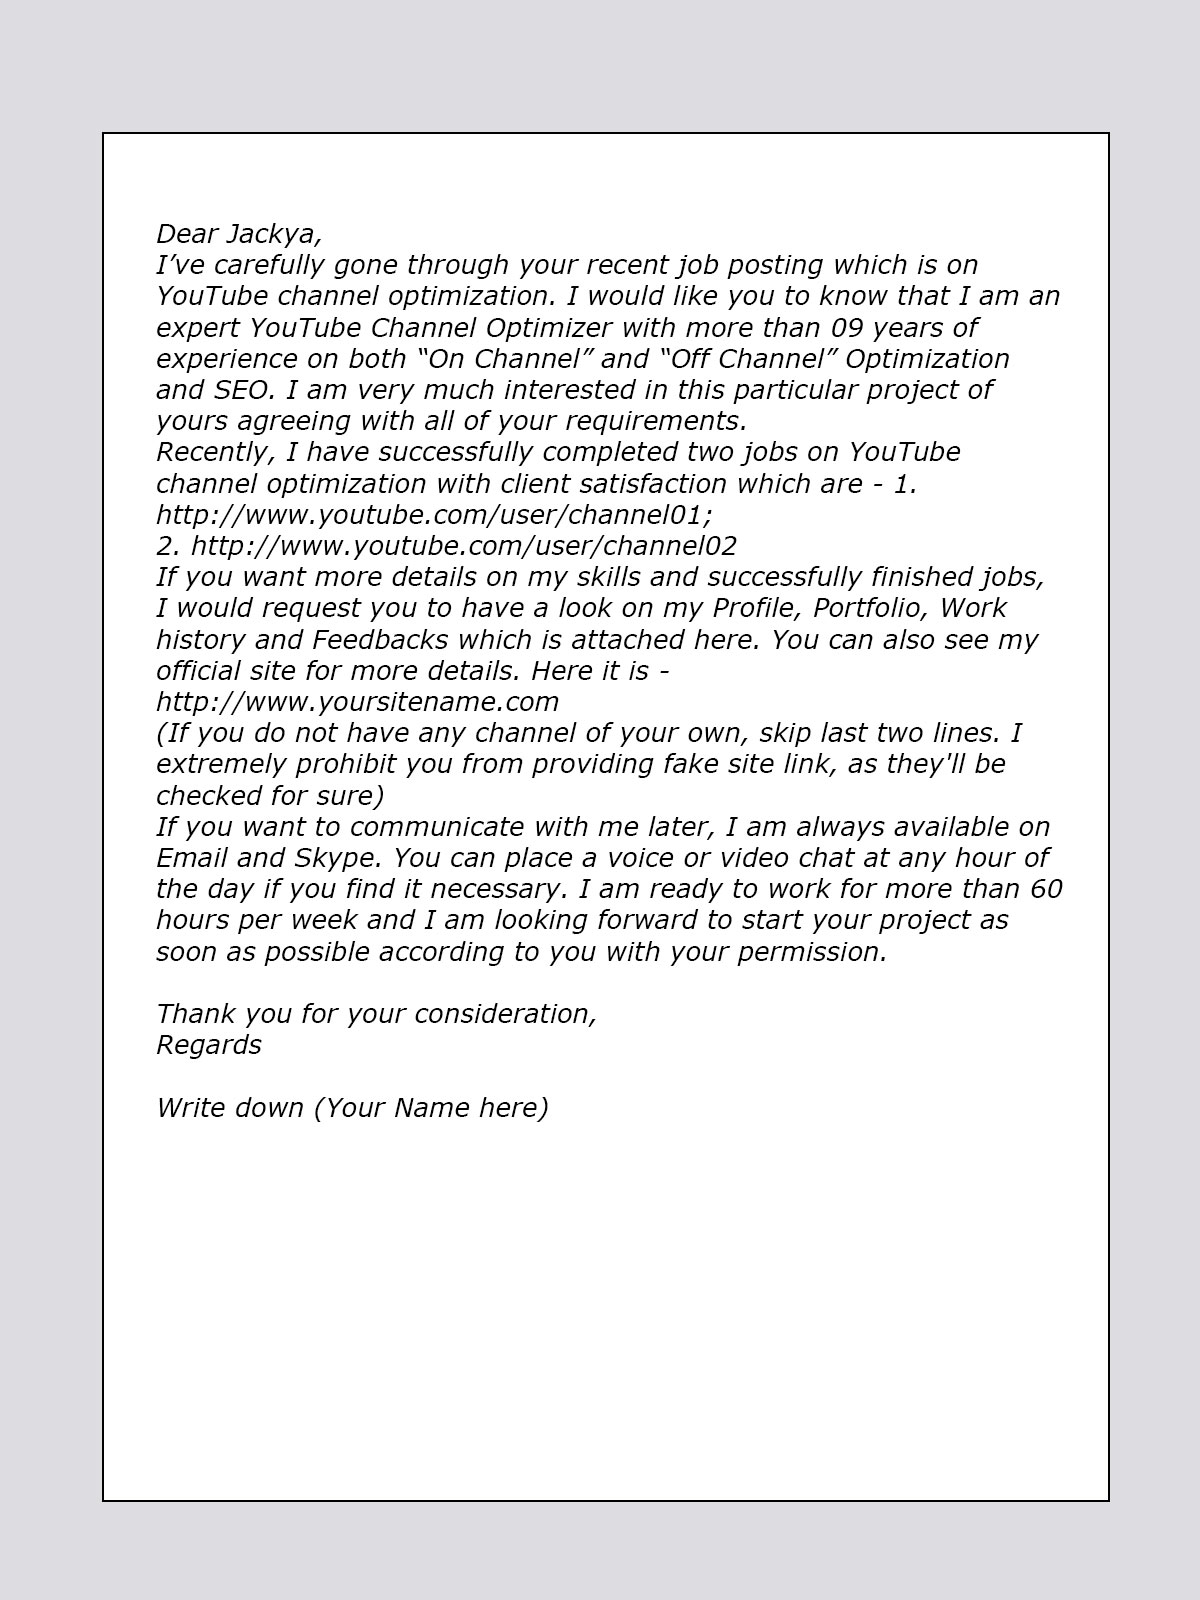 Cover Letter Sample For YouTube / Video Marketing